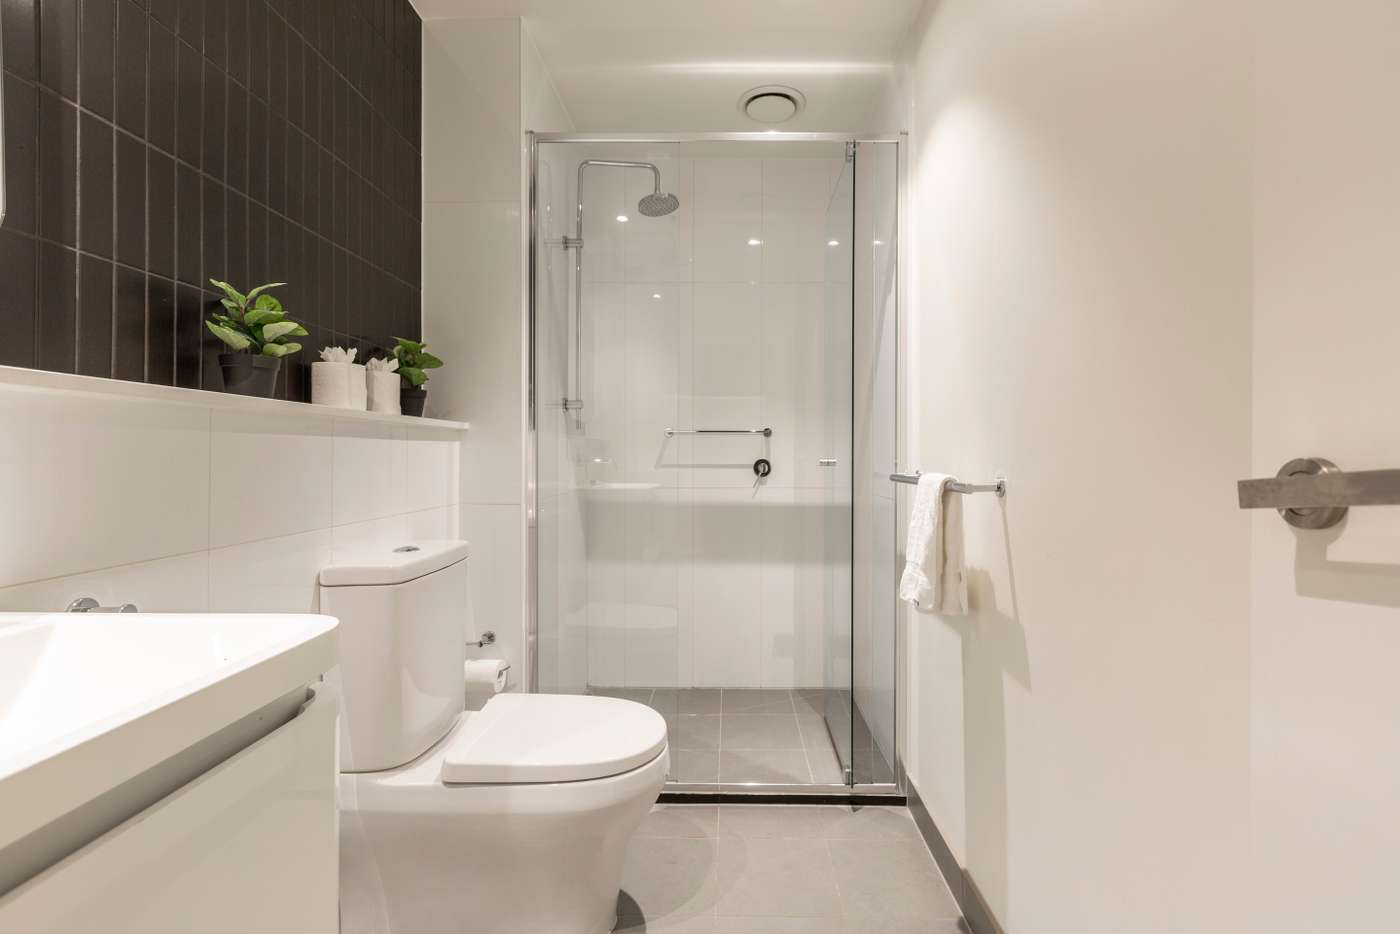 Seventh view of Homely apartment listing, 3 Brewery Lane, Collingwood VIC 3066